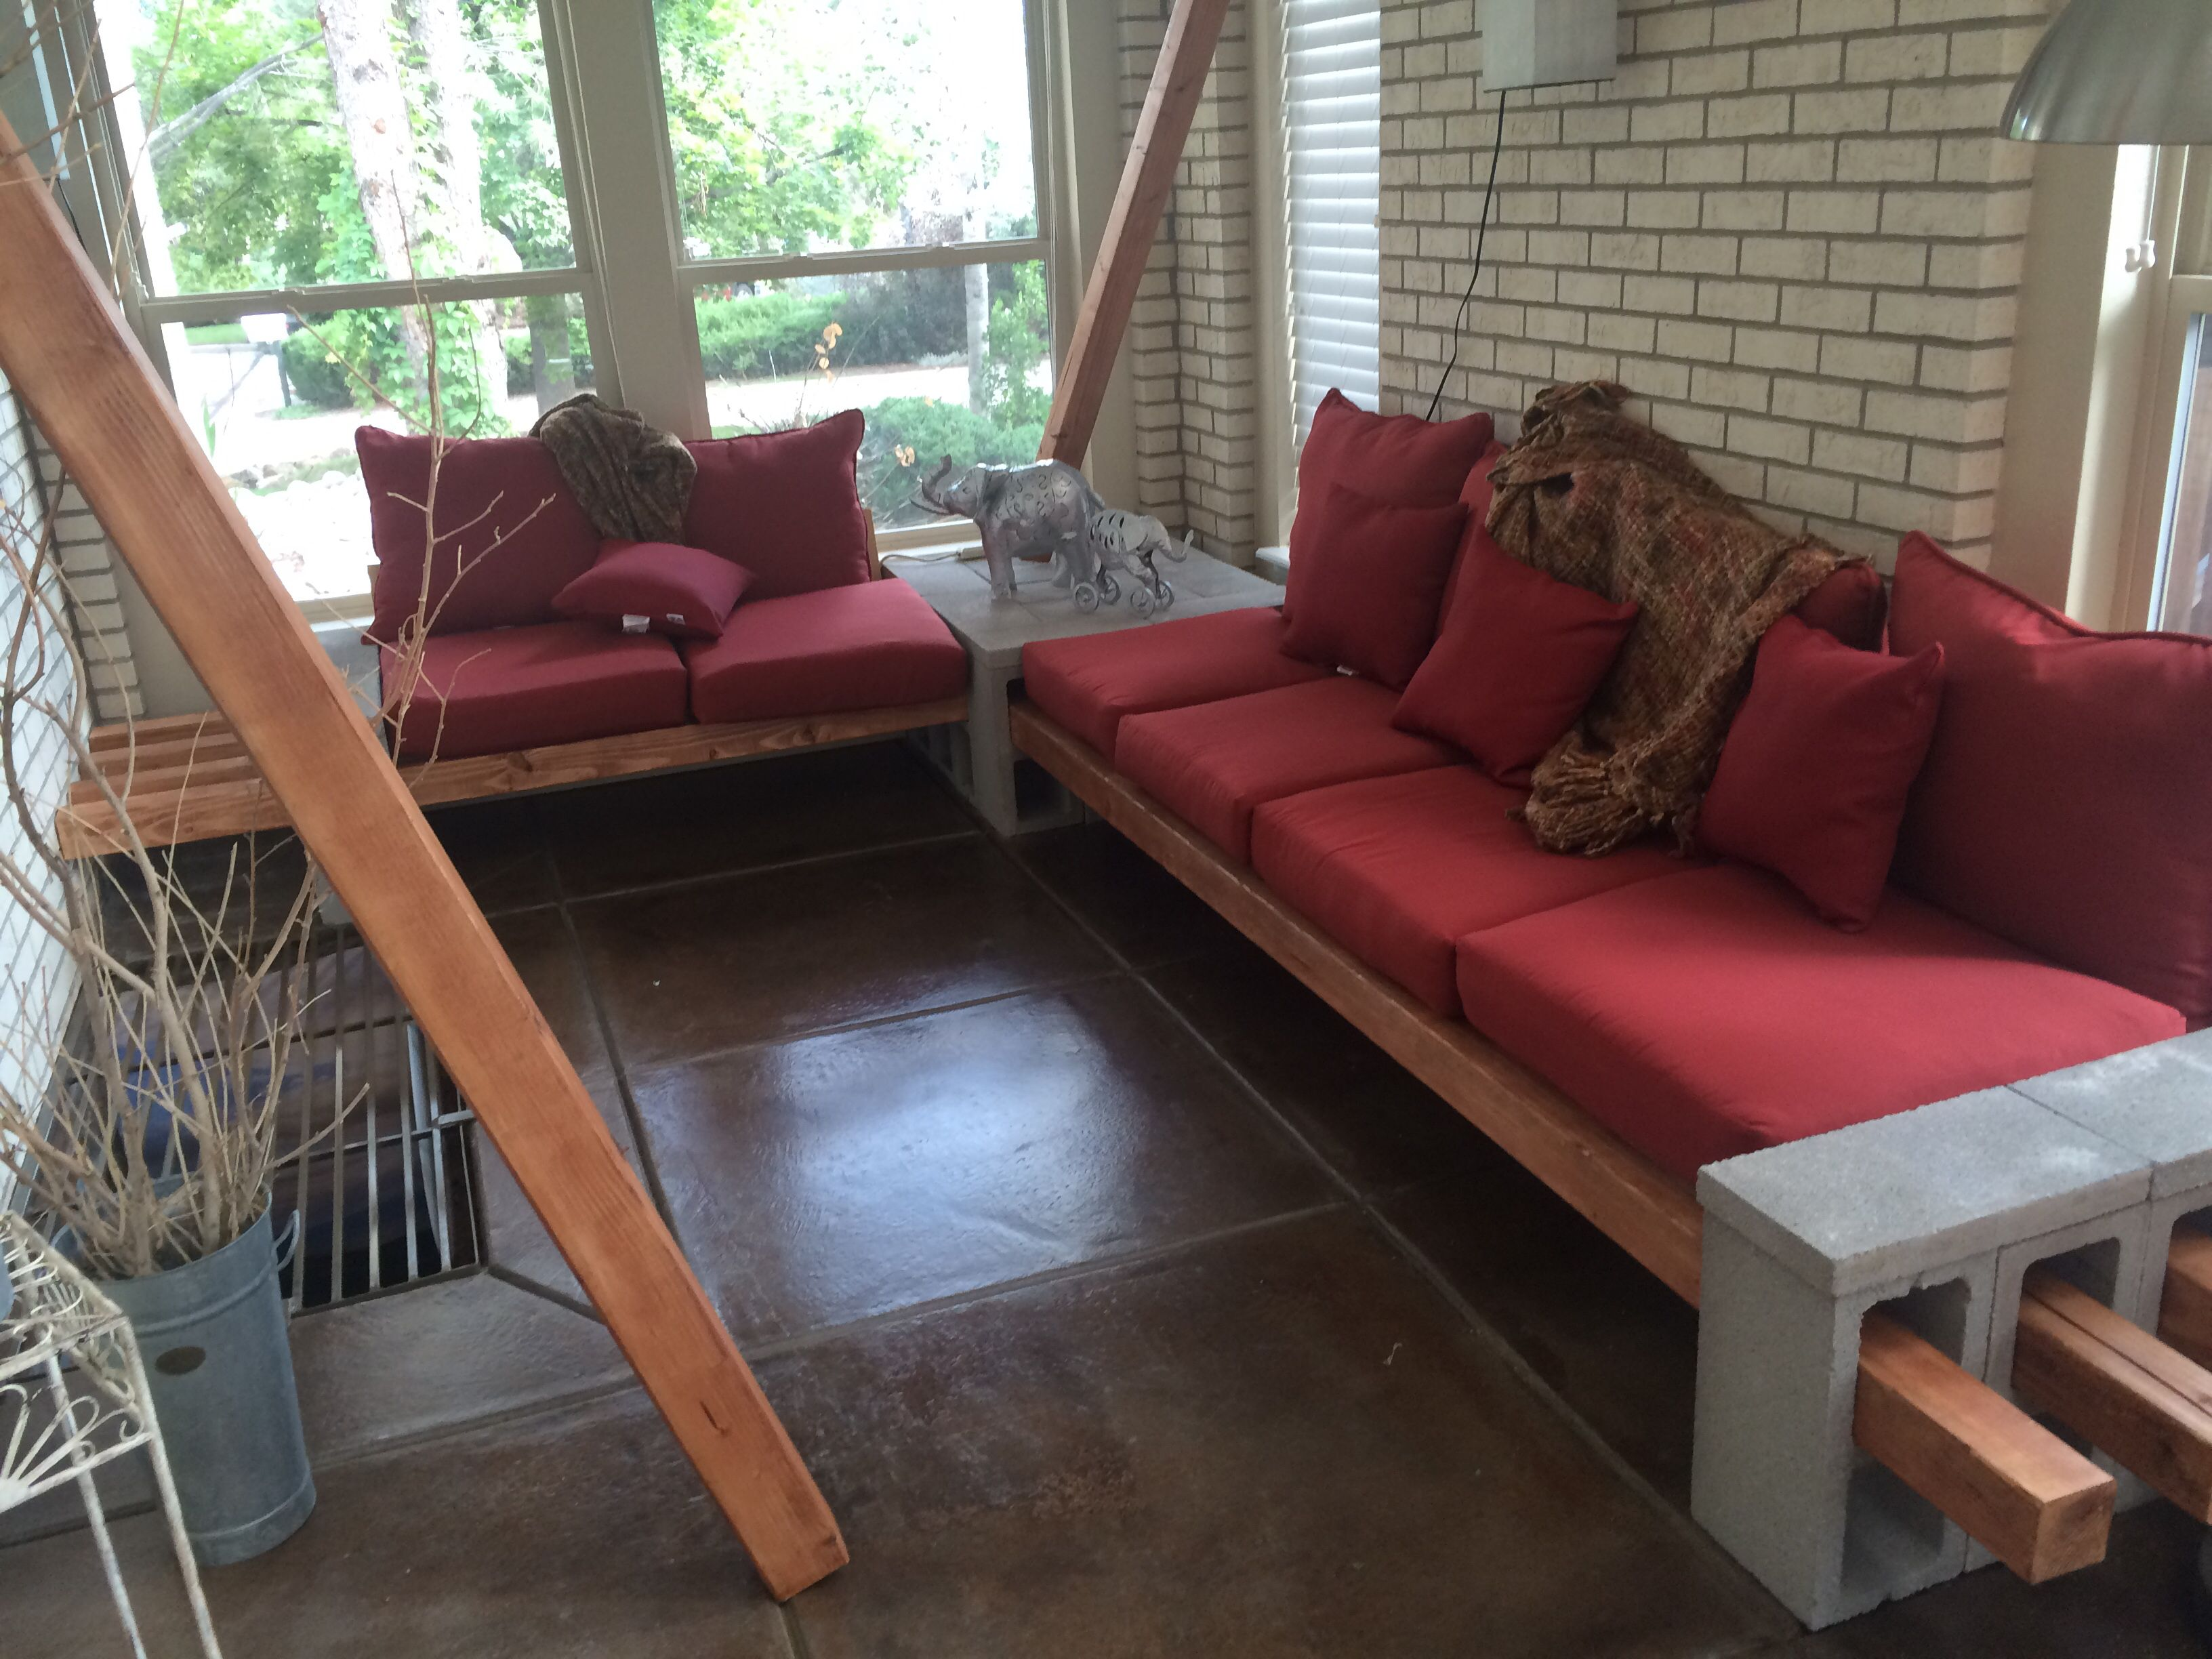 diy concrete block and wood corner couch couch in 2019 corner rh pinterest com